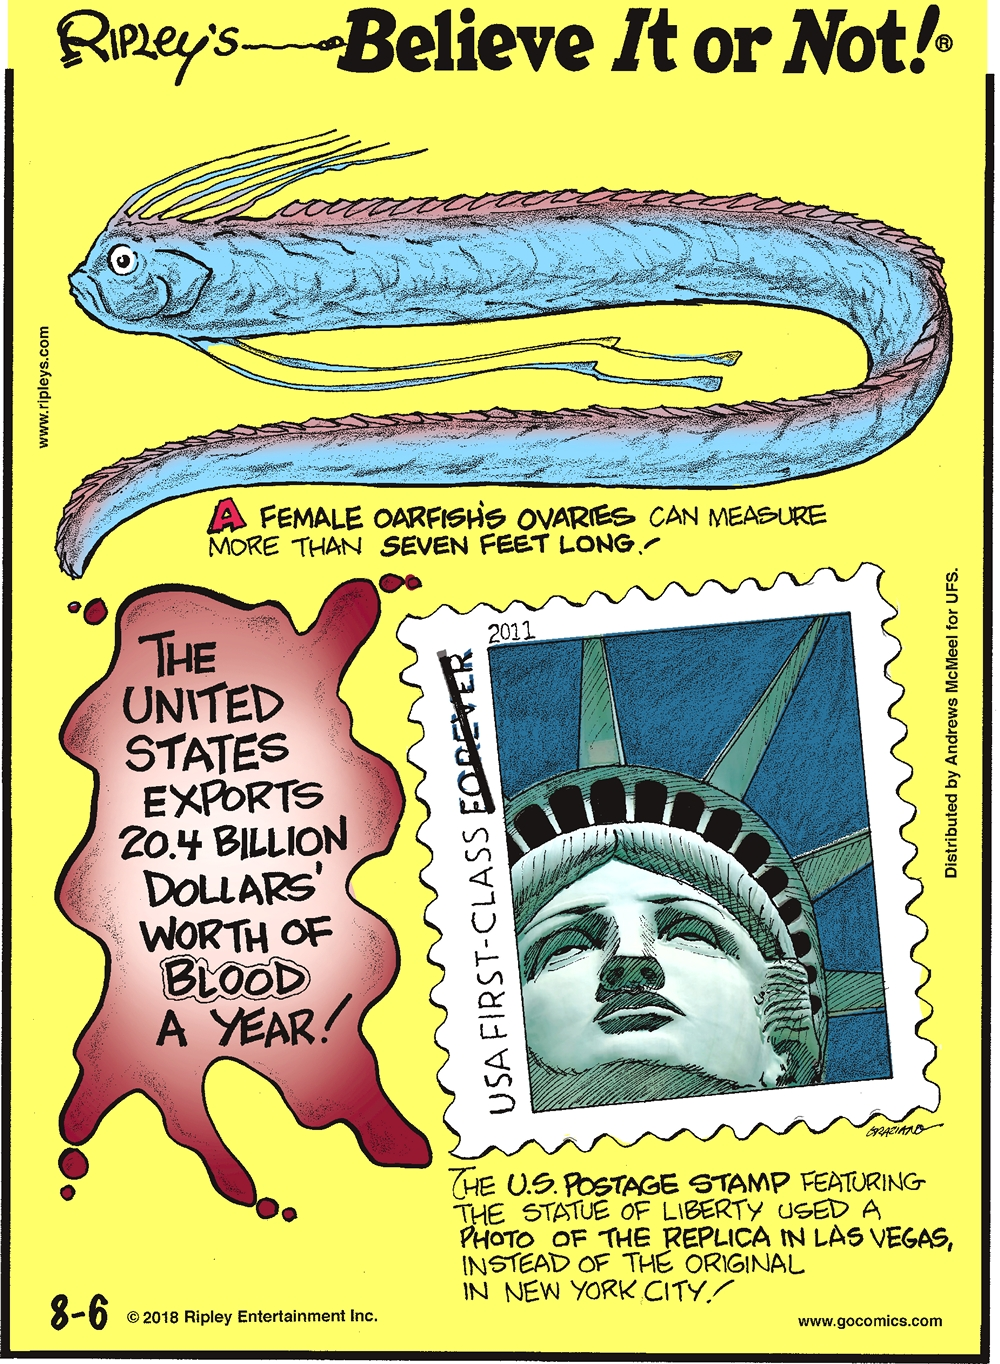 1. A female oarfish's ovaries can measure more than seven feet long! 2. The United States exports 20.4 billion dollars' worth of blood a year! 3. The U.S. postage stamp featuring the Statue of Liberty used a photo of the replica in Las Vegas instead of the original in New York City!